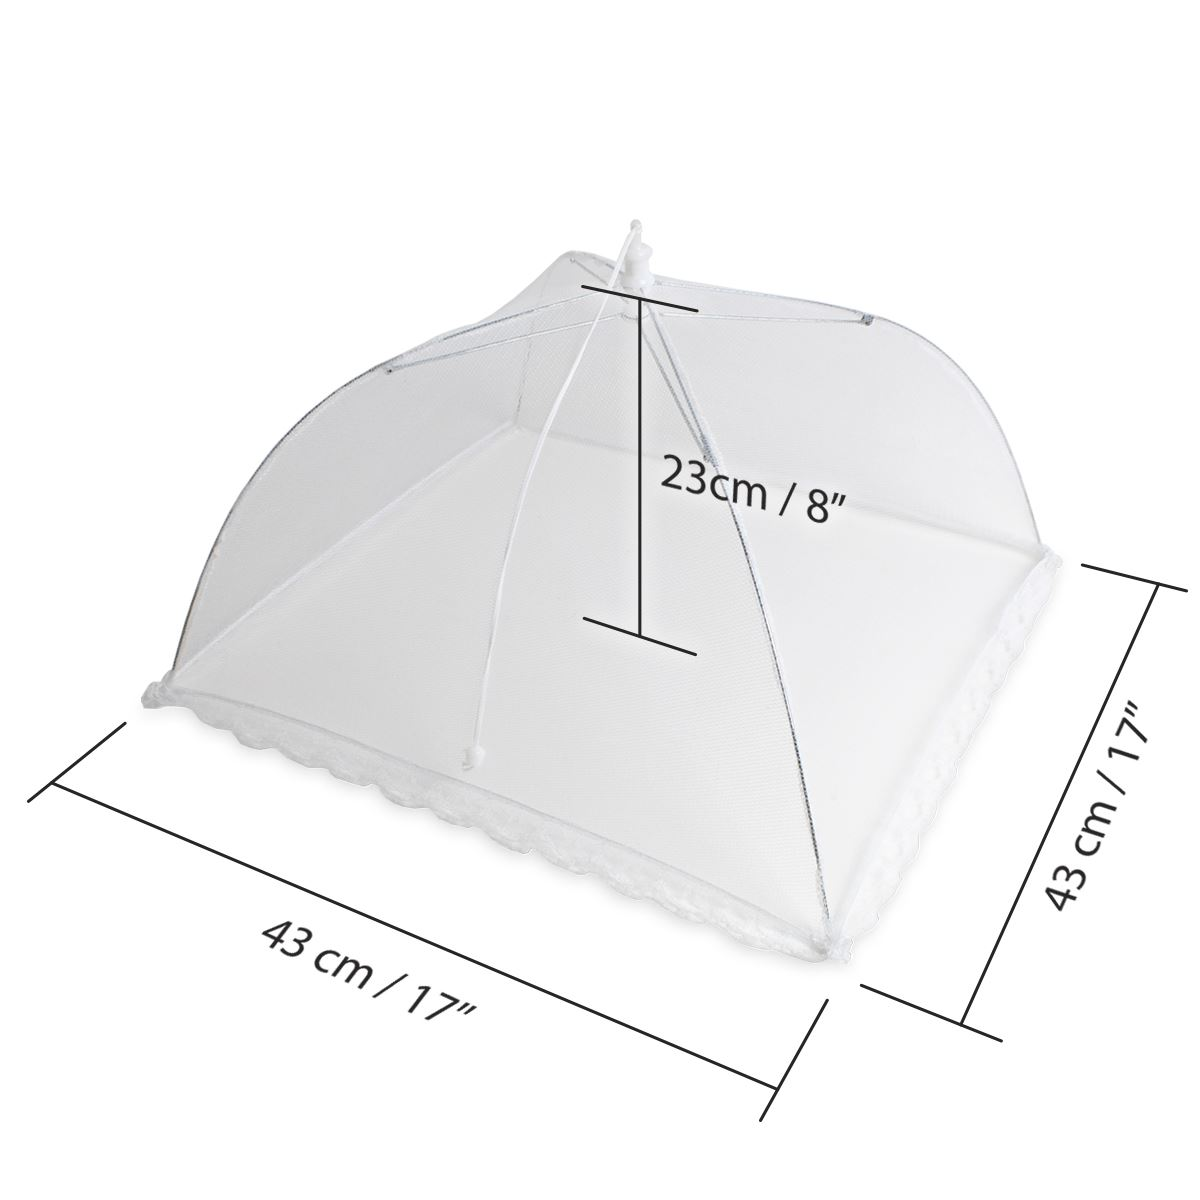 Reusable-Pop-up-Mesh-Screen-Dome-Food-Cover-Tent-Umbrella-Net-BBQ-Table-Fly thumbnail 7